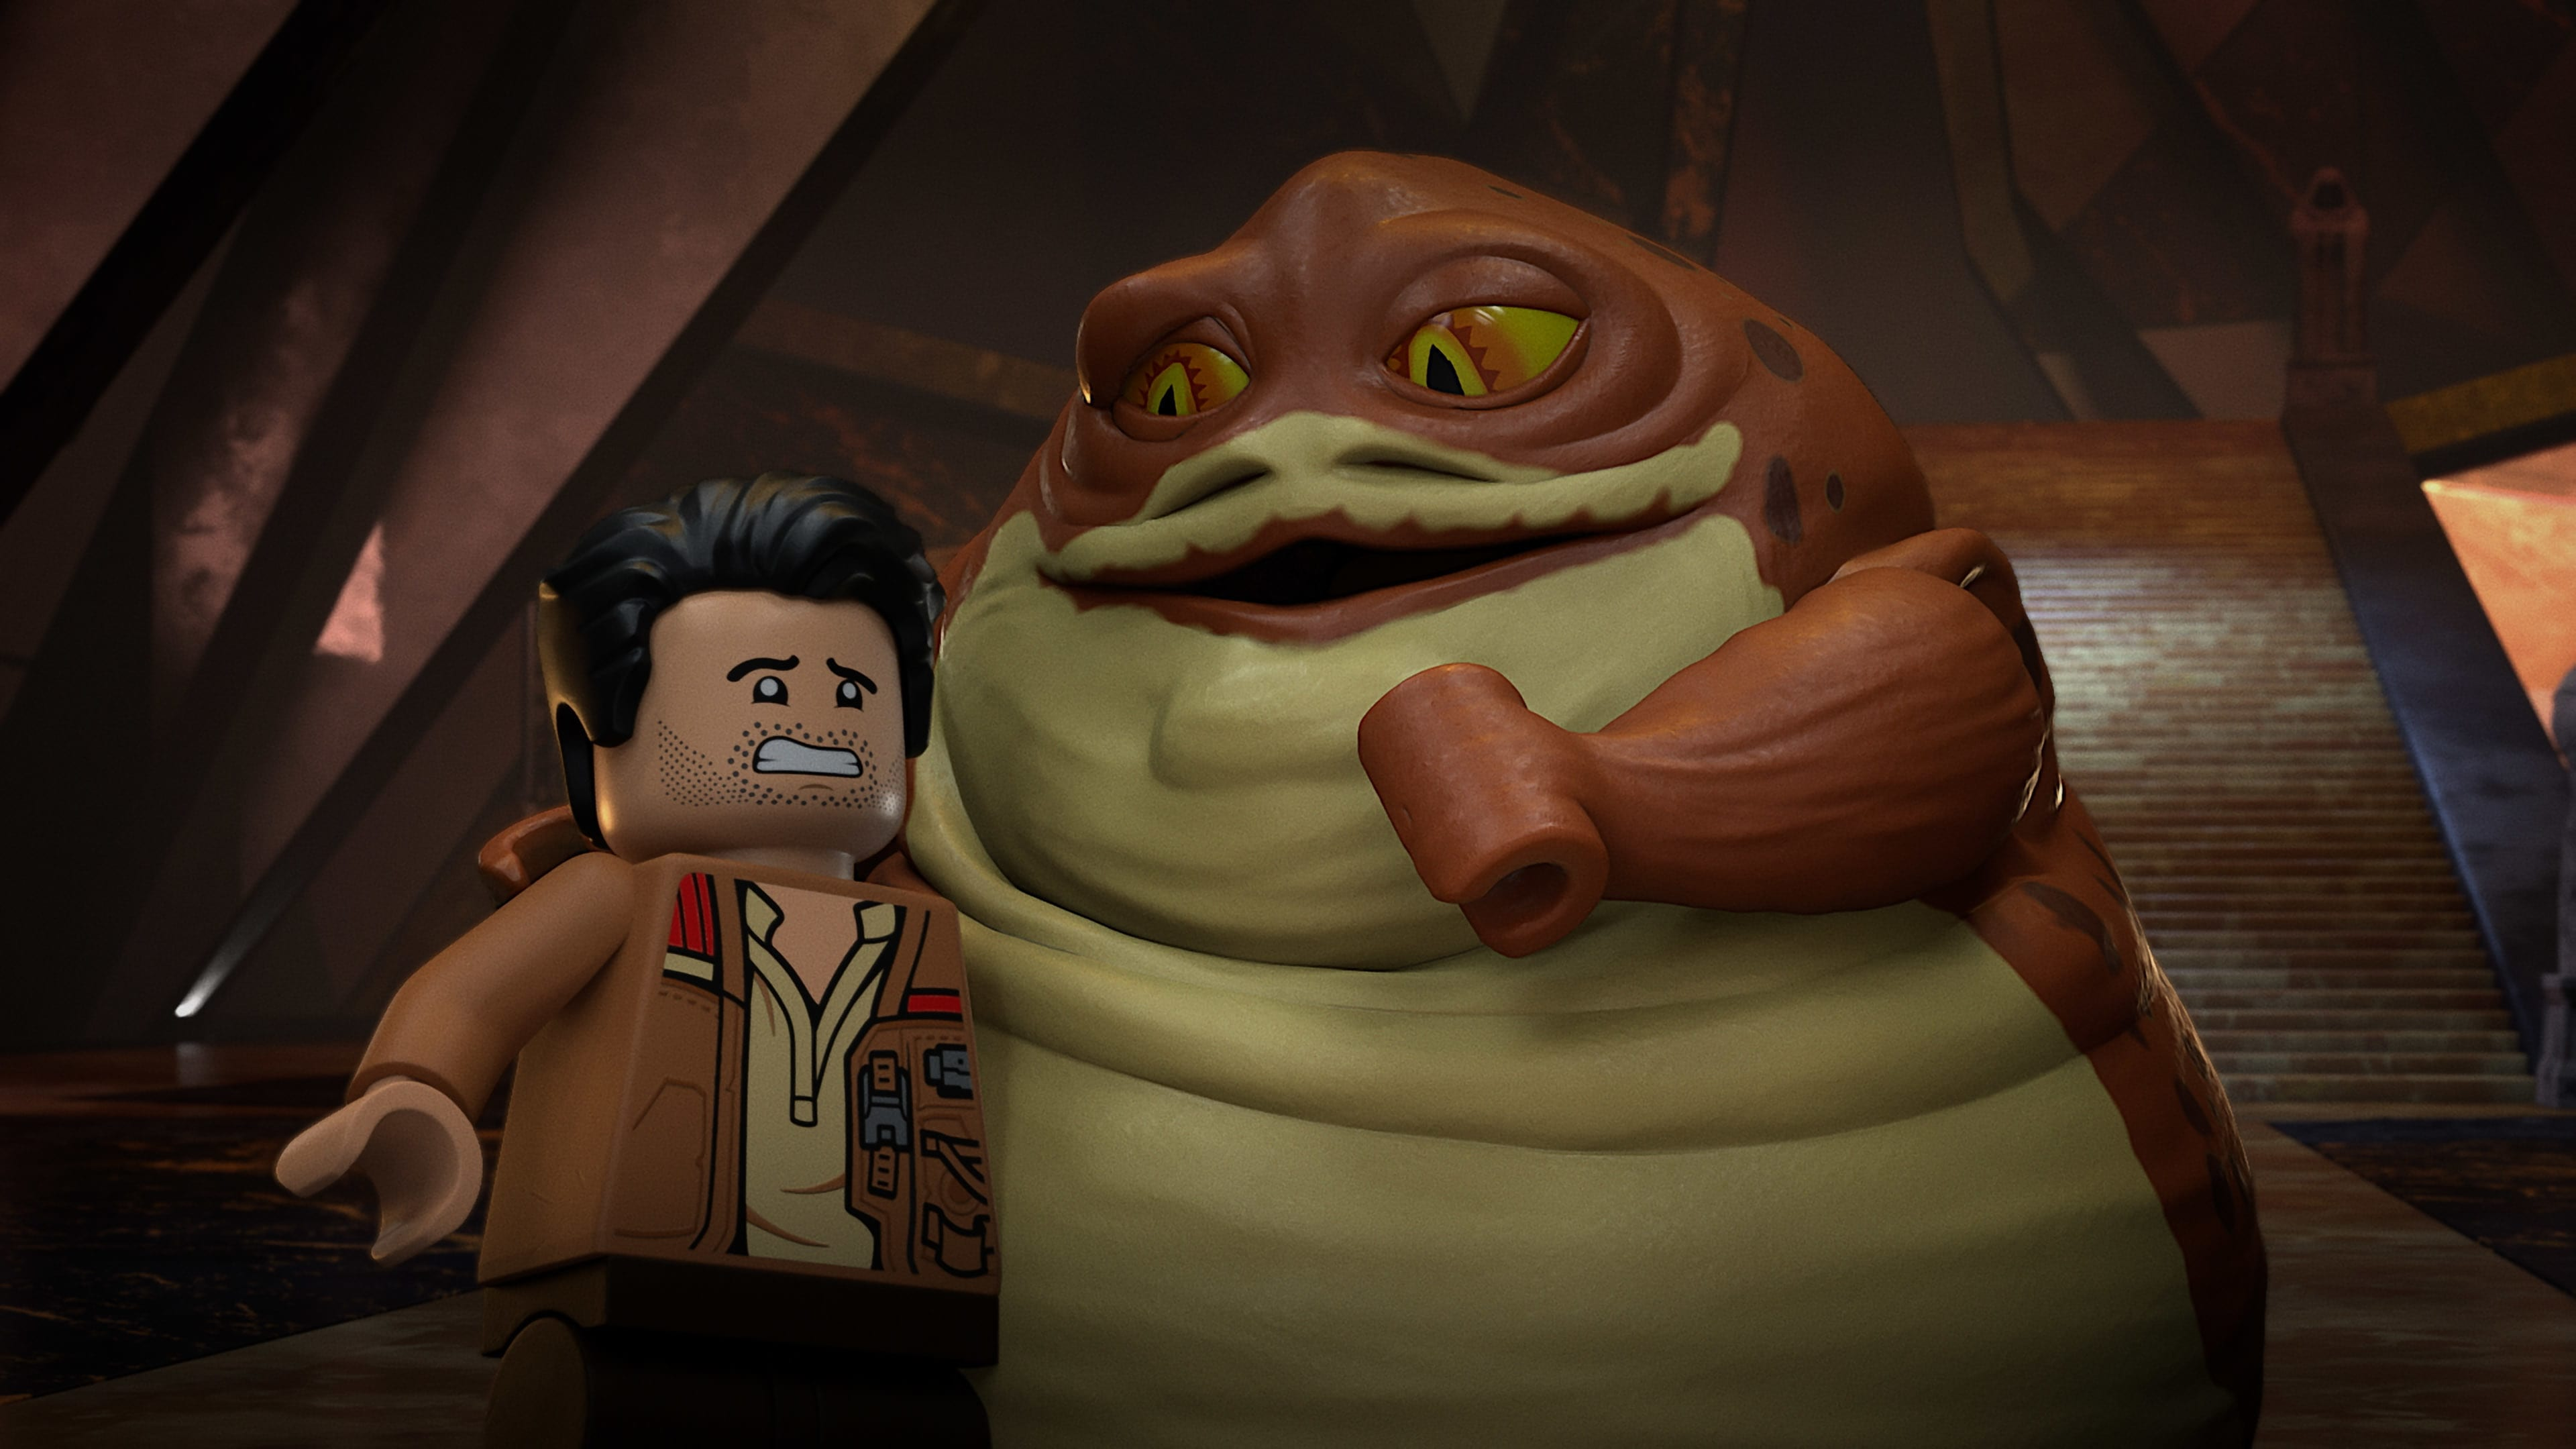 (L-R): Poe Dameron and Graballa the Hutt in LEGO STAR WARS TERRIFYING TALES exclusively on Disney+. ©2021 Lucasfilm Ltd. & TM. All Rights Reserved.